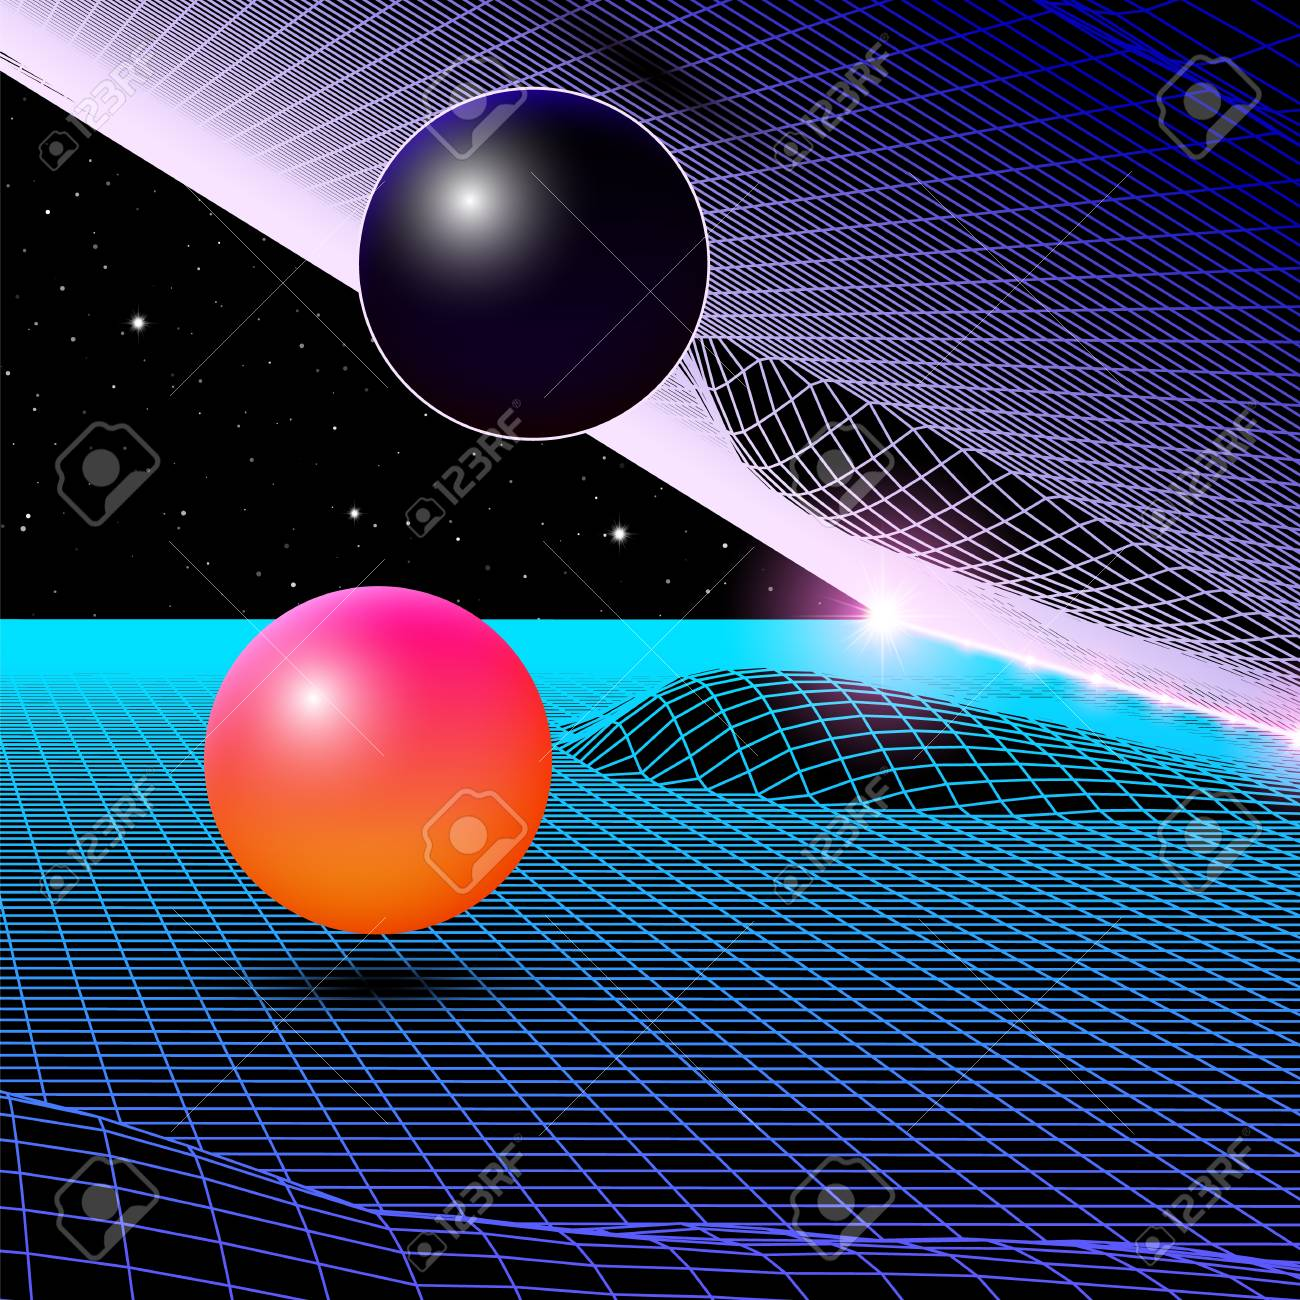 Landscape with wireframe grid of 80s styled retro computer game